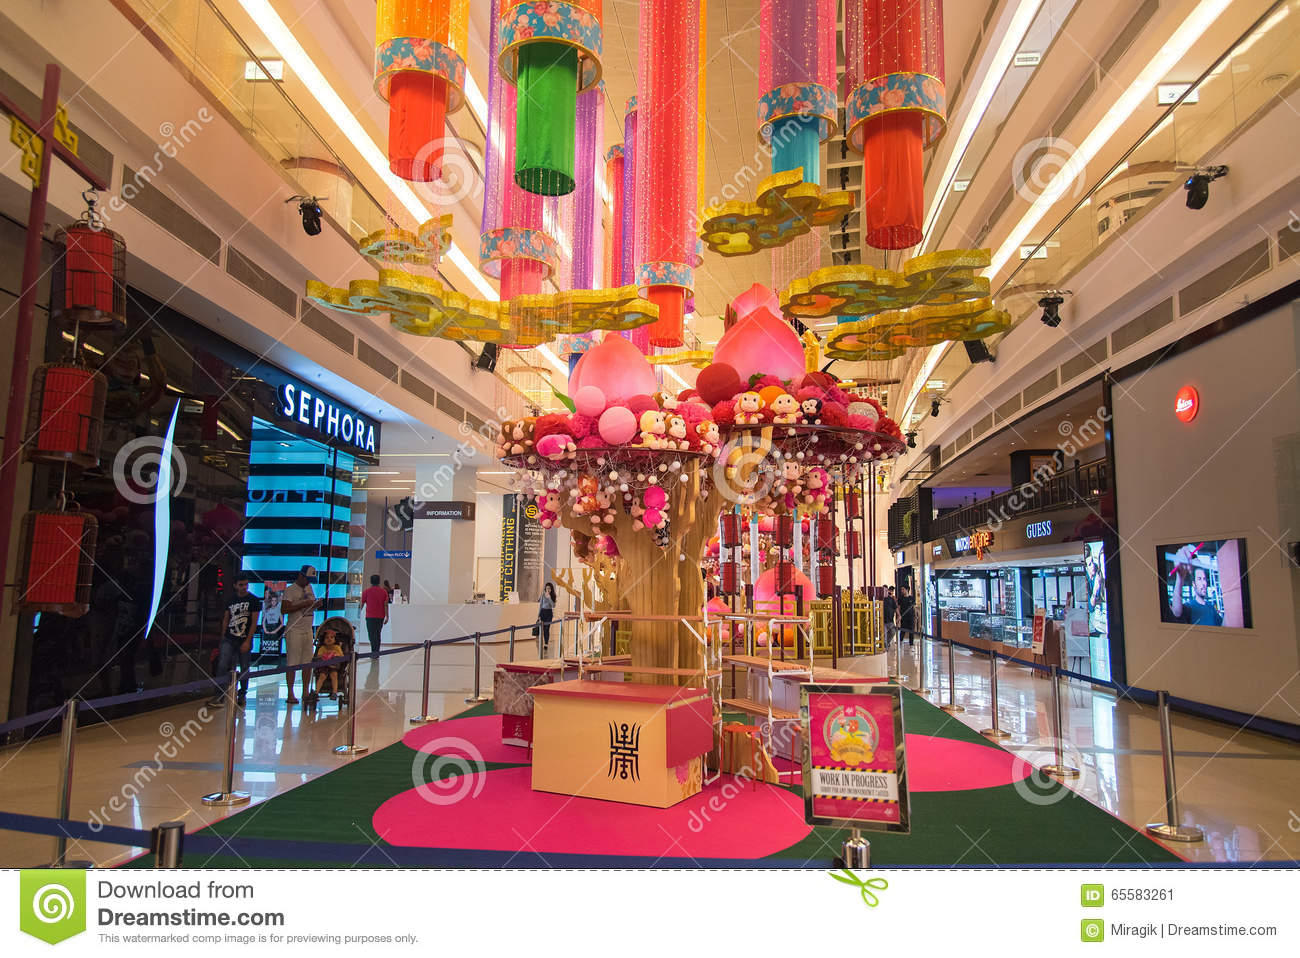 Avenue k shopping mall interior editorial photo image for Interior decoration for new year